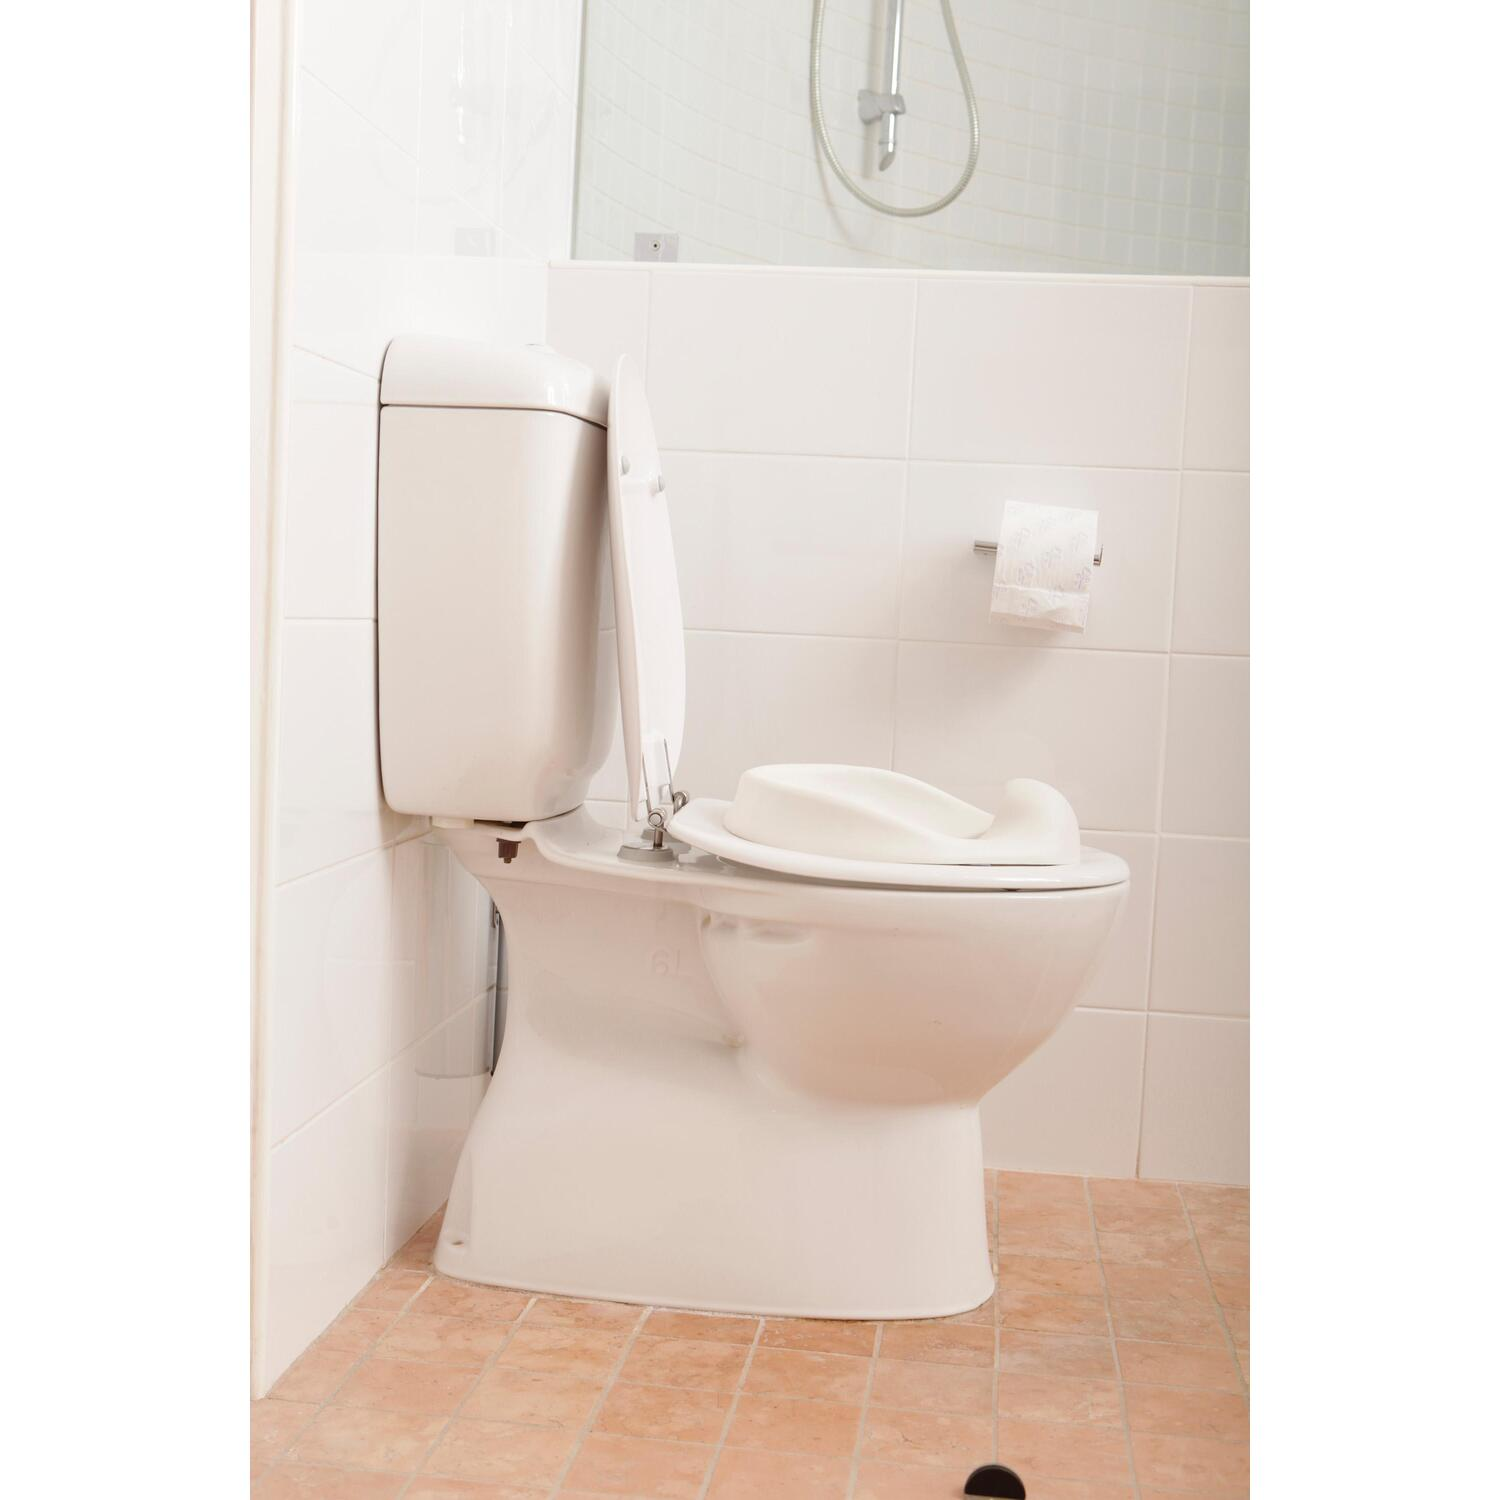 soft touch toilet seat. Furniture  Home Goods Appliances Athletic Gear Fitness Toys Baby Products Musical Instruments OJCommerce com